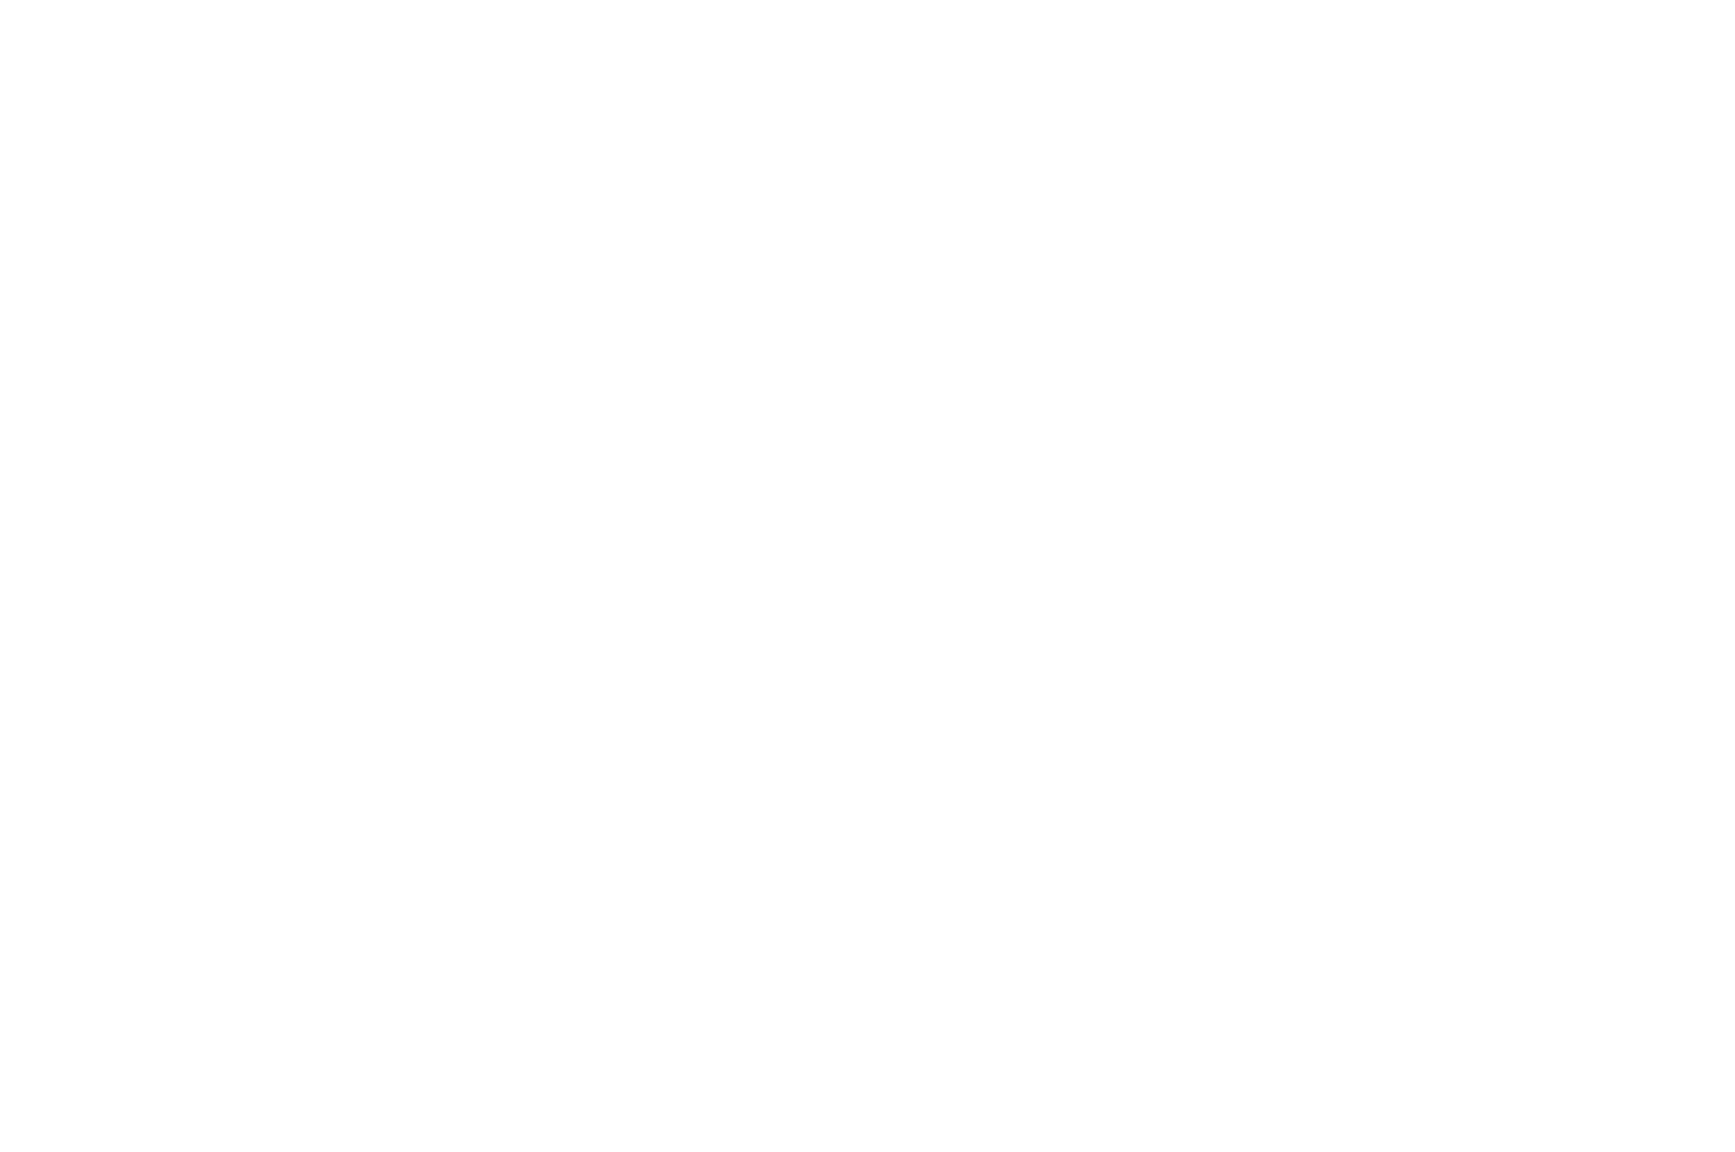 Queer Screen Sydney, Australia - April 7, 2019ALL INFO HERE